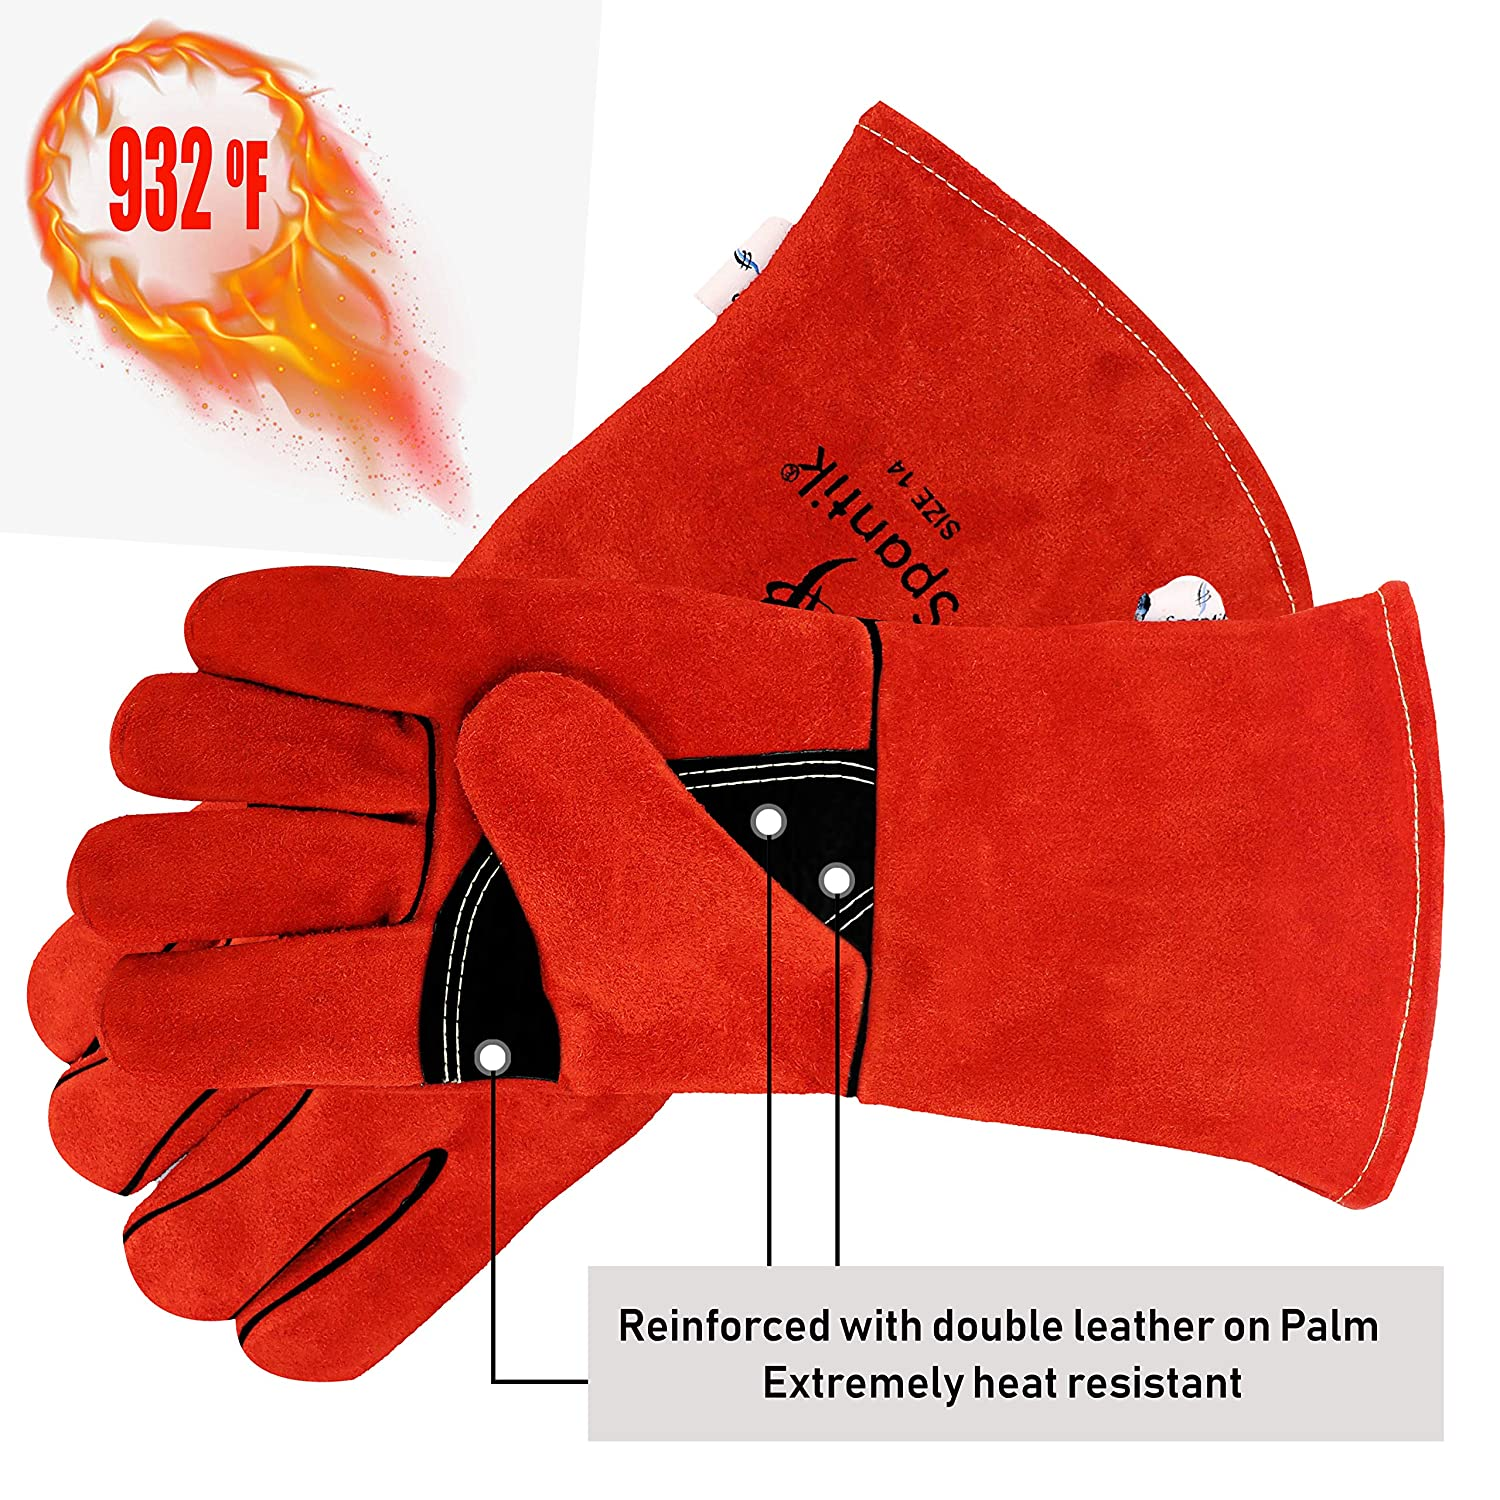 Spantik Leather Welding Gloves 14 sz Tig Mig Welder Kevlar Stitch Forge Heat Fire Resistant BBQ Grill Oven Mitts Stove Pot Holder Cooking Fireplace Camping Furnace Workplace Flame Retardant Gardening